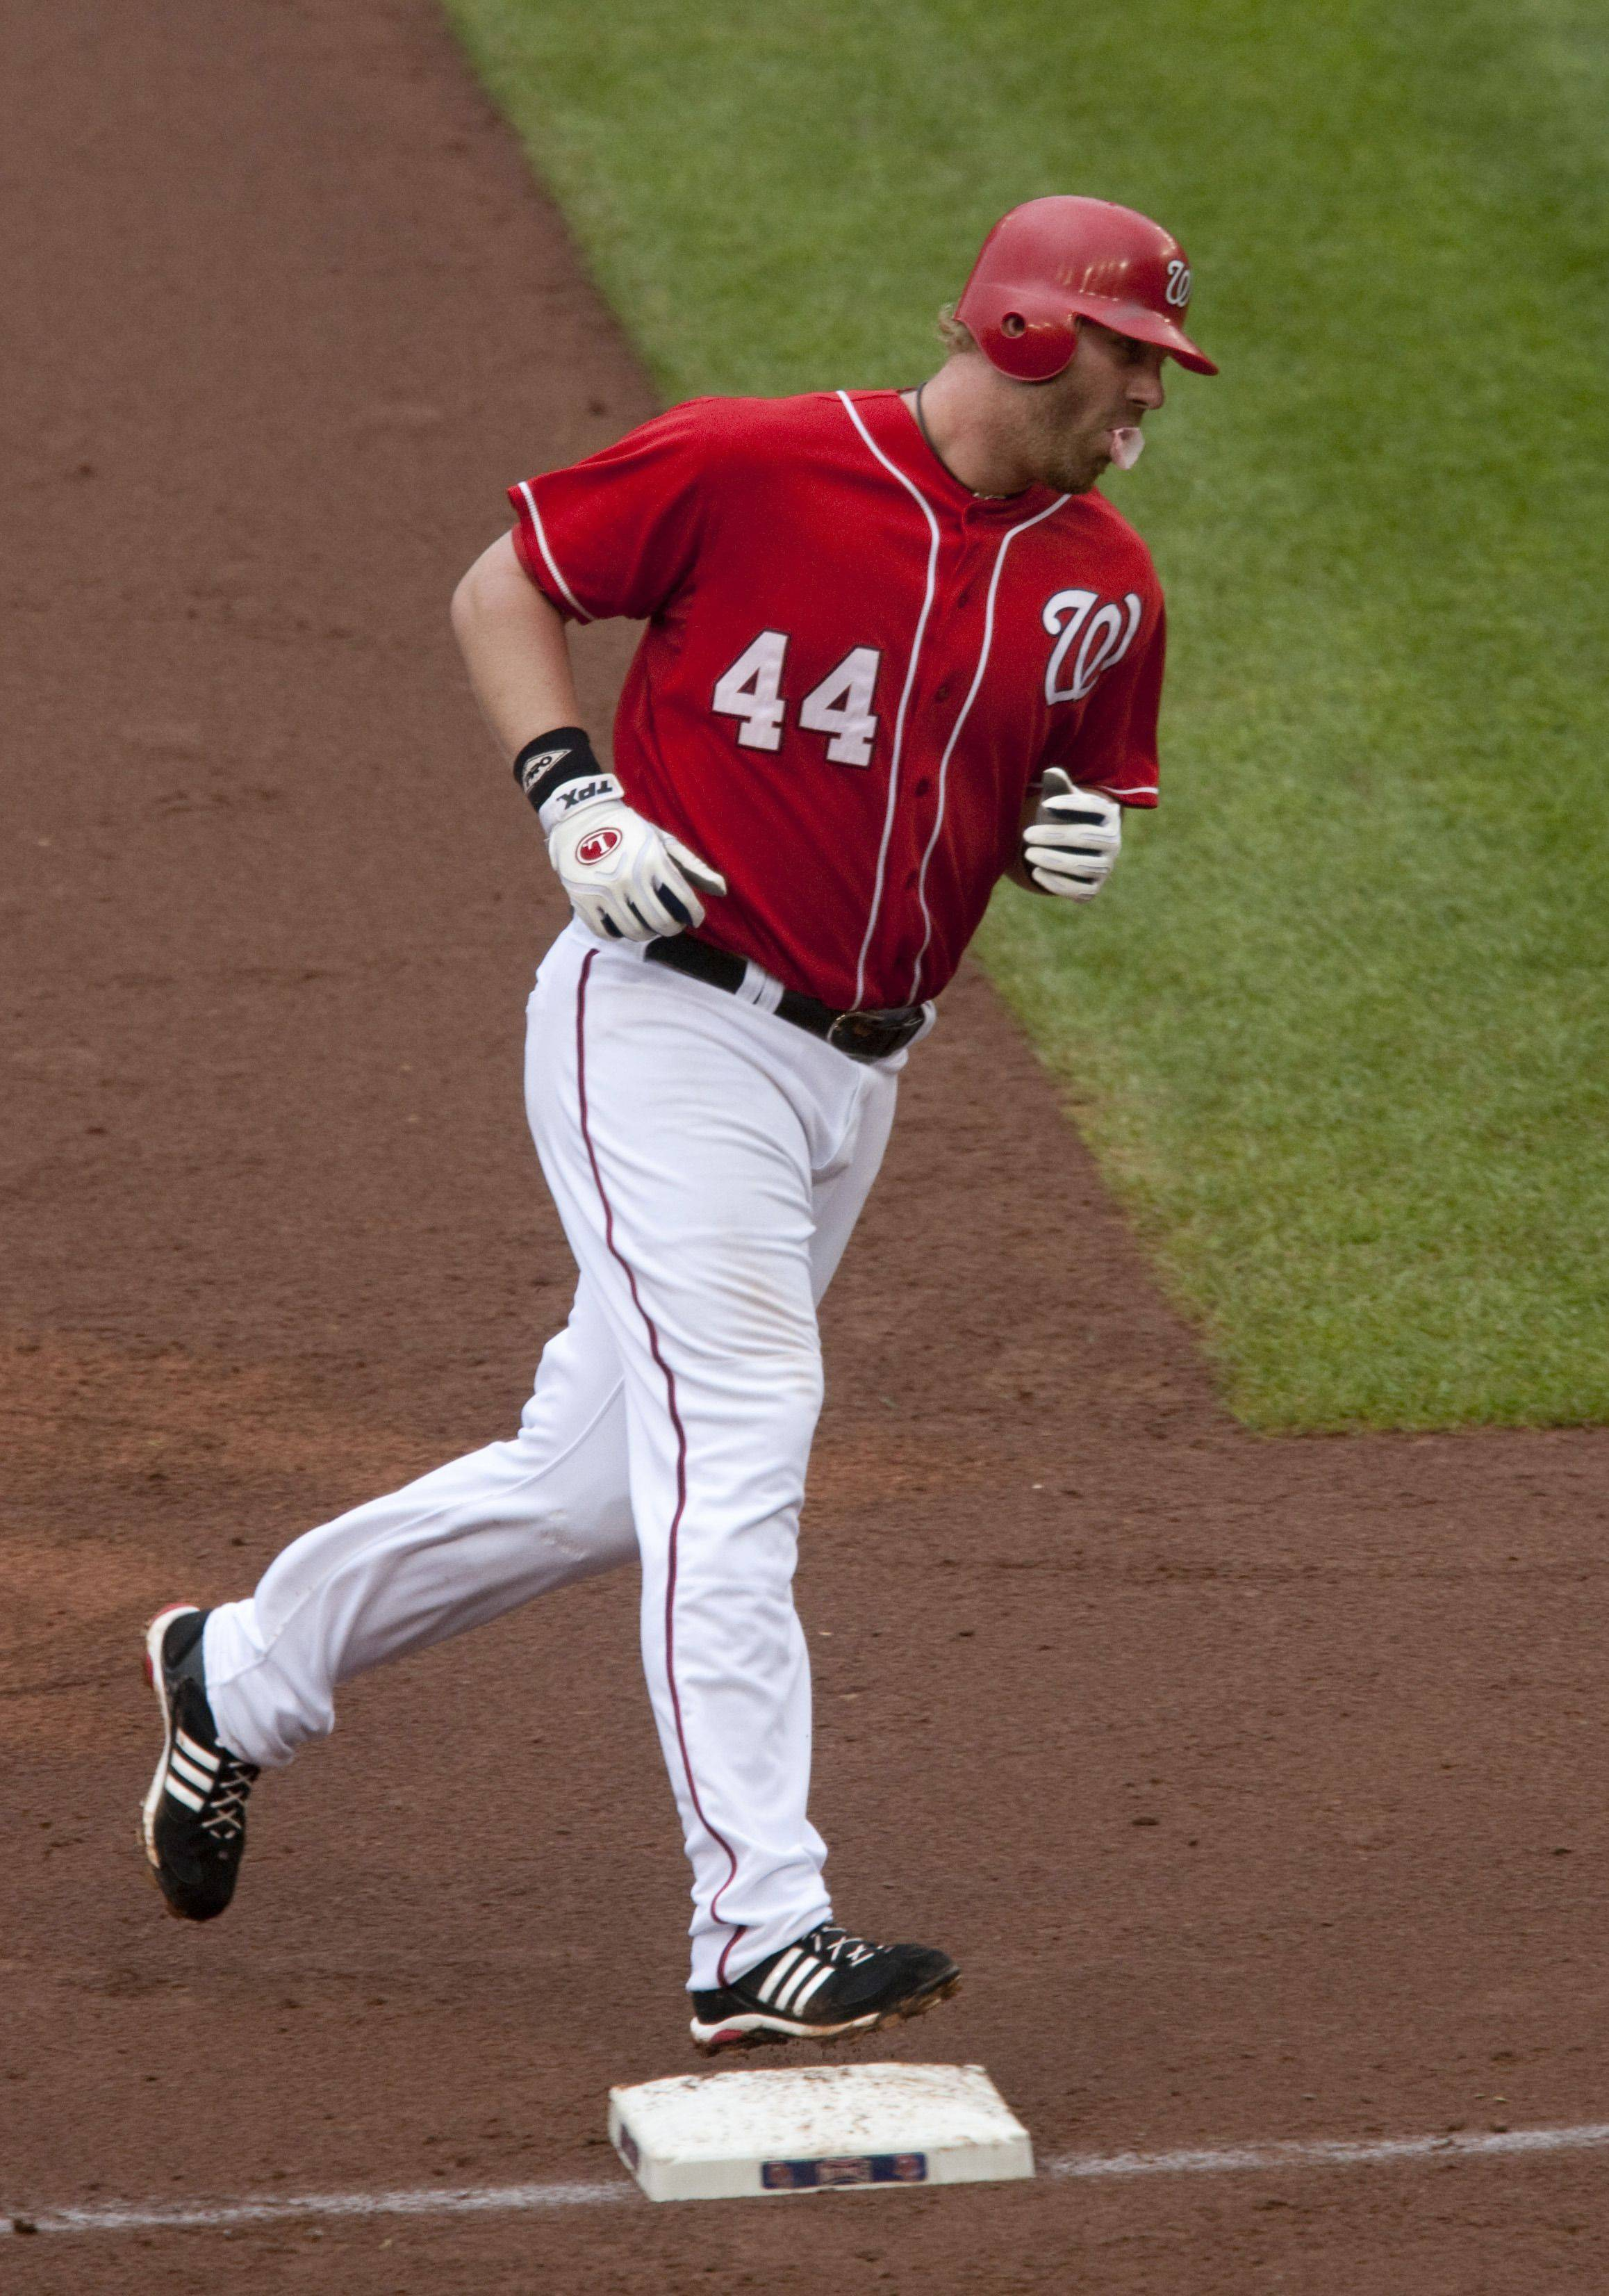 Washington Nationals' Adam Dunn rounds third base after hitting a two-run home run during the sixth inning of a baseball game against the Philadelphia Phillies.